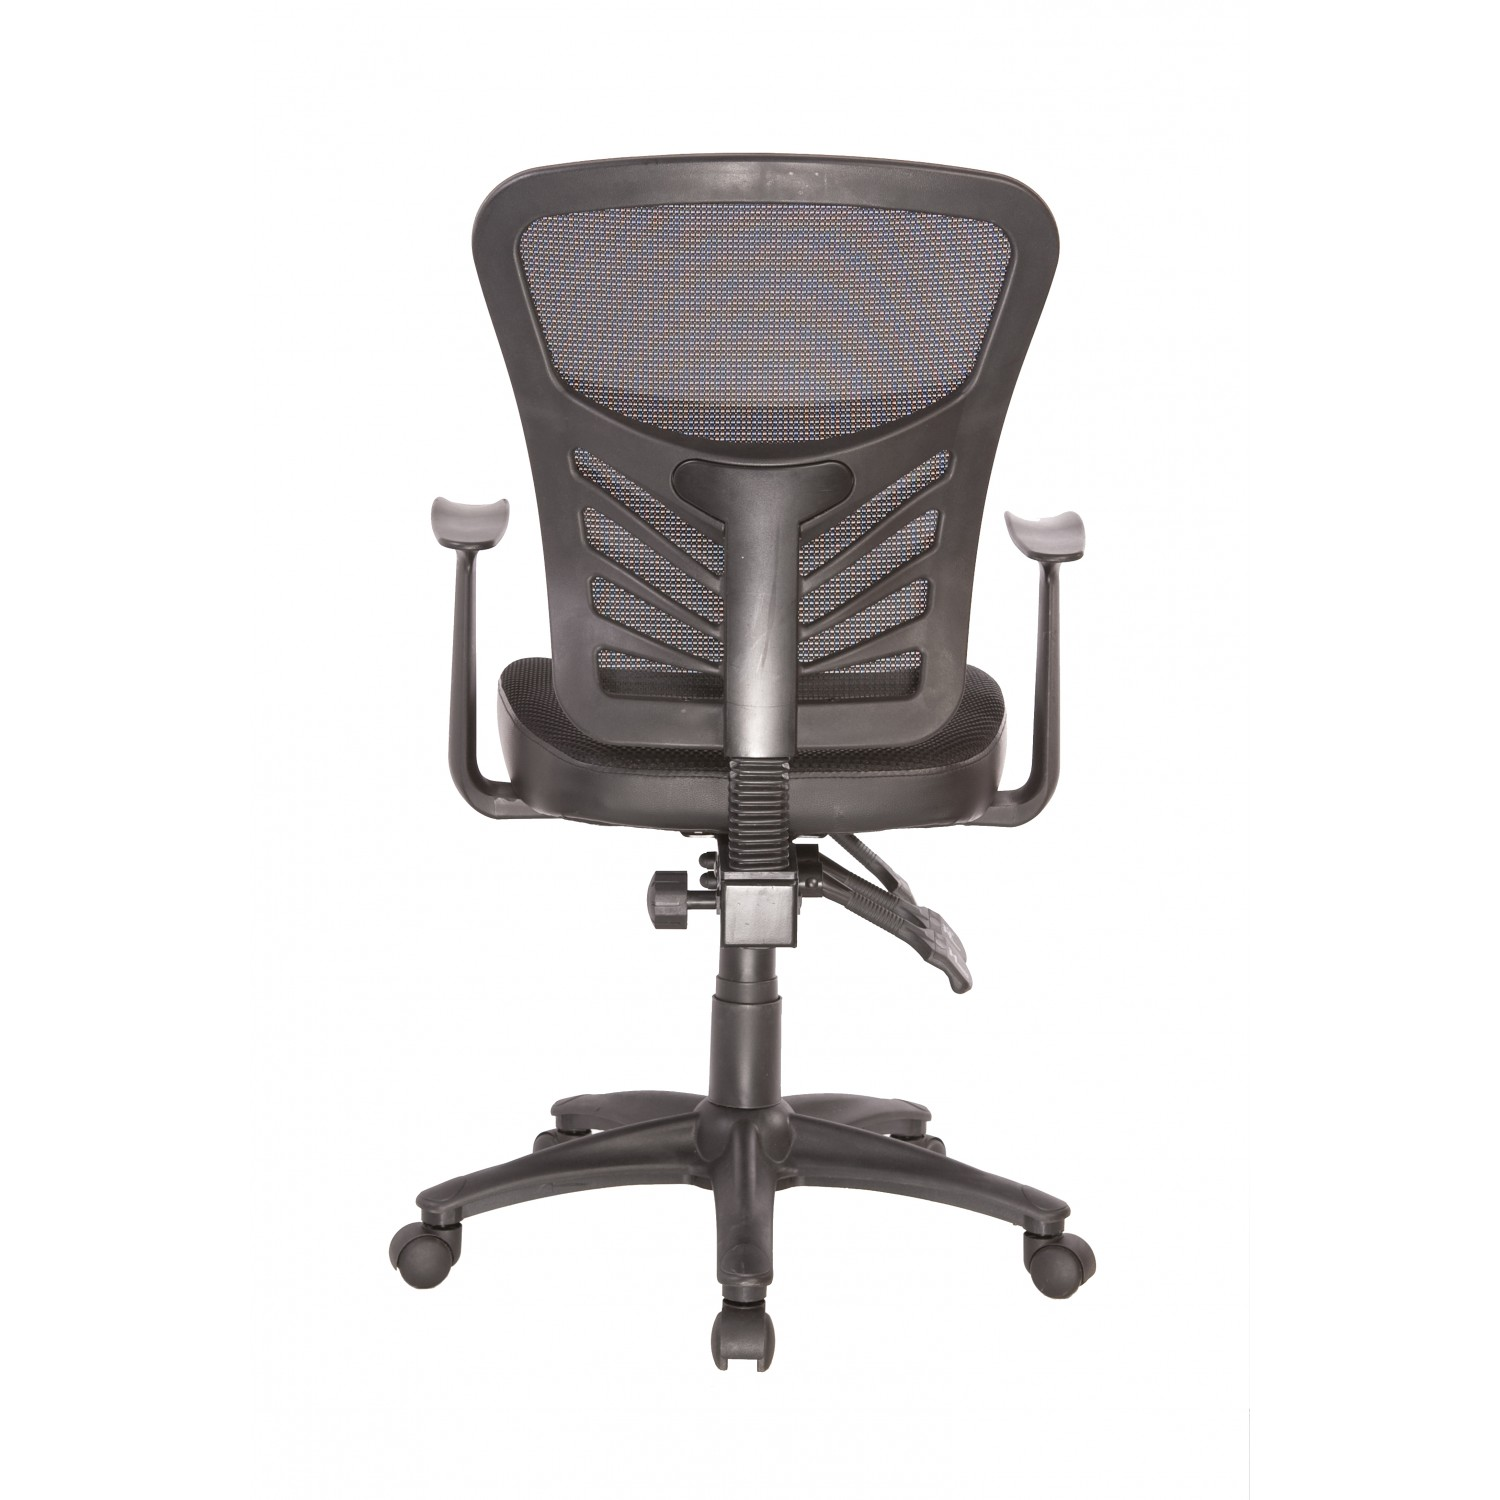 Yarra Executive Mesh Chair Office Furniture Since 1990